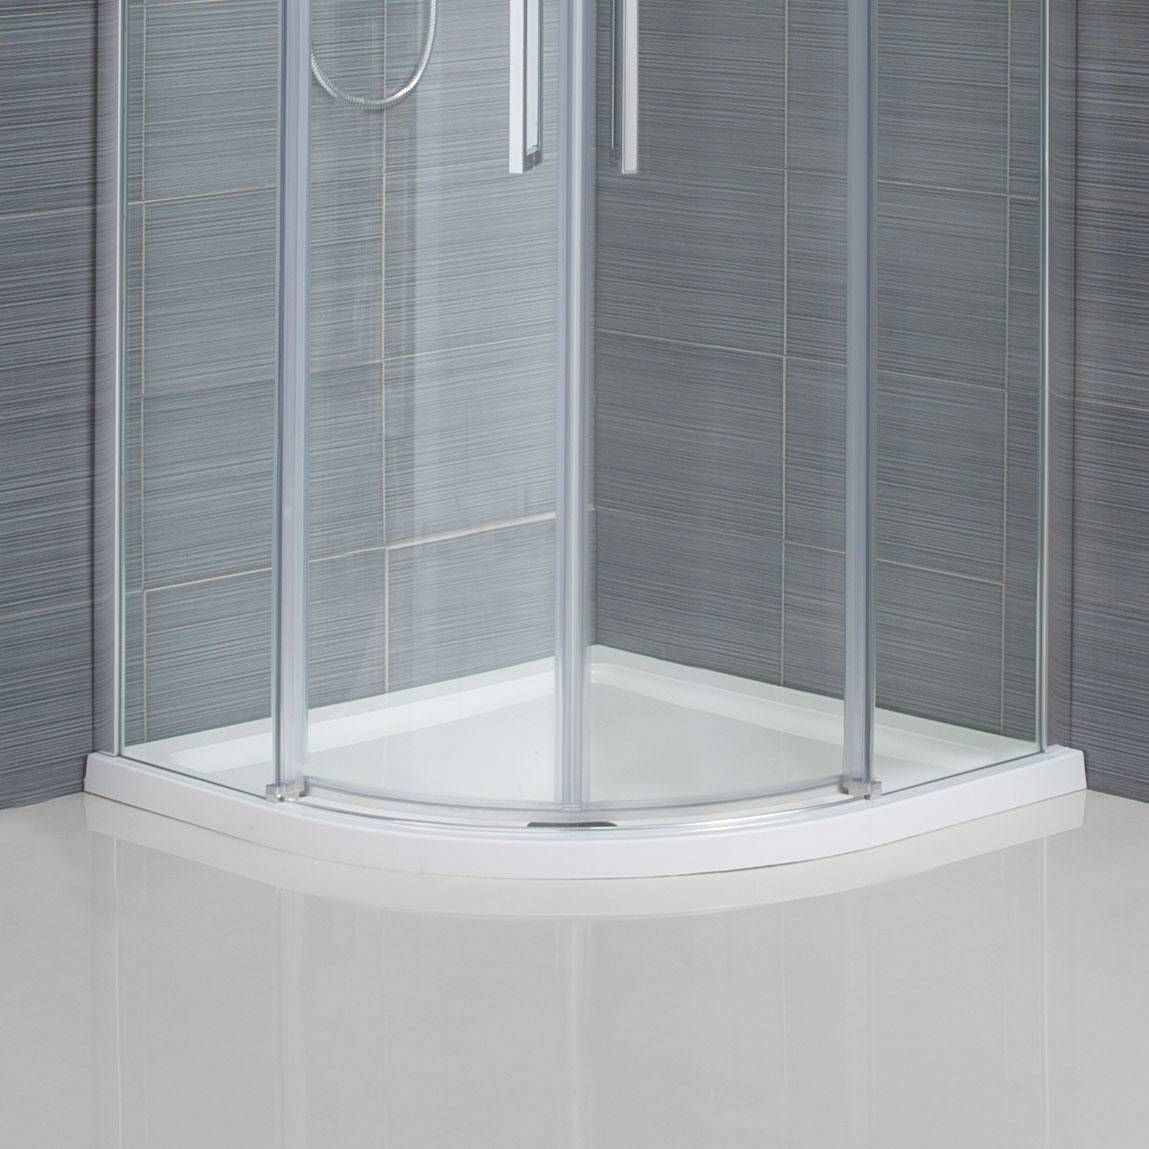 Quadrant Slimline Shower Tray 800 Shower Tray Stone Shower Shower Tray Sizes